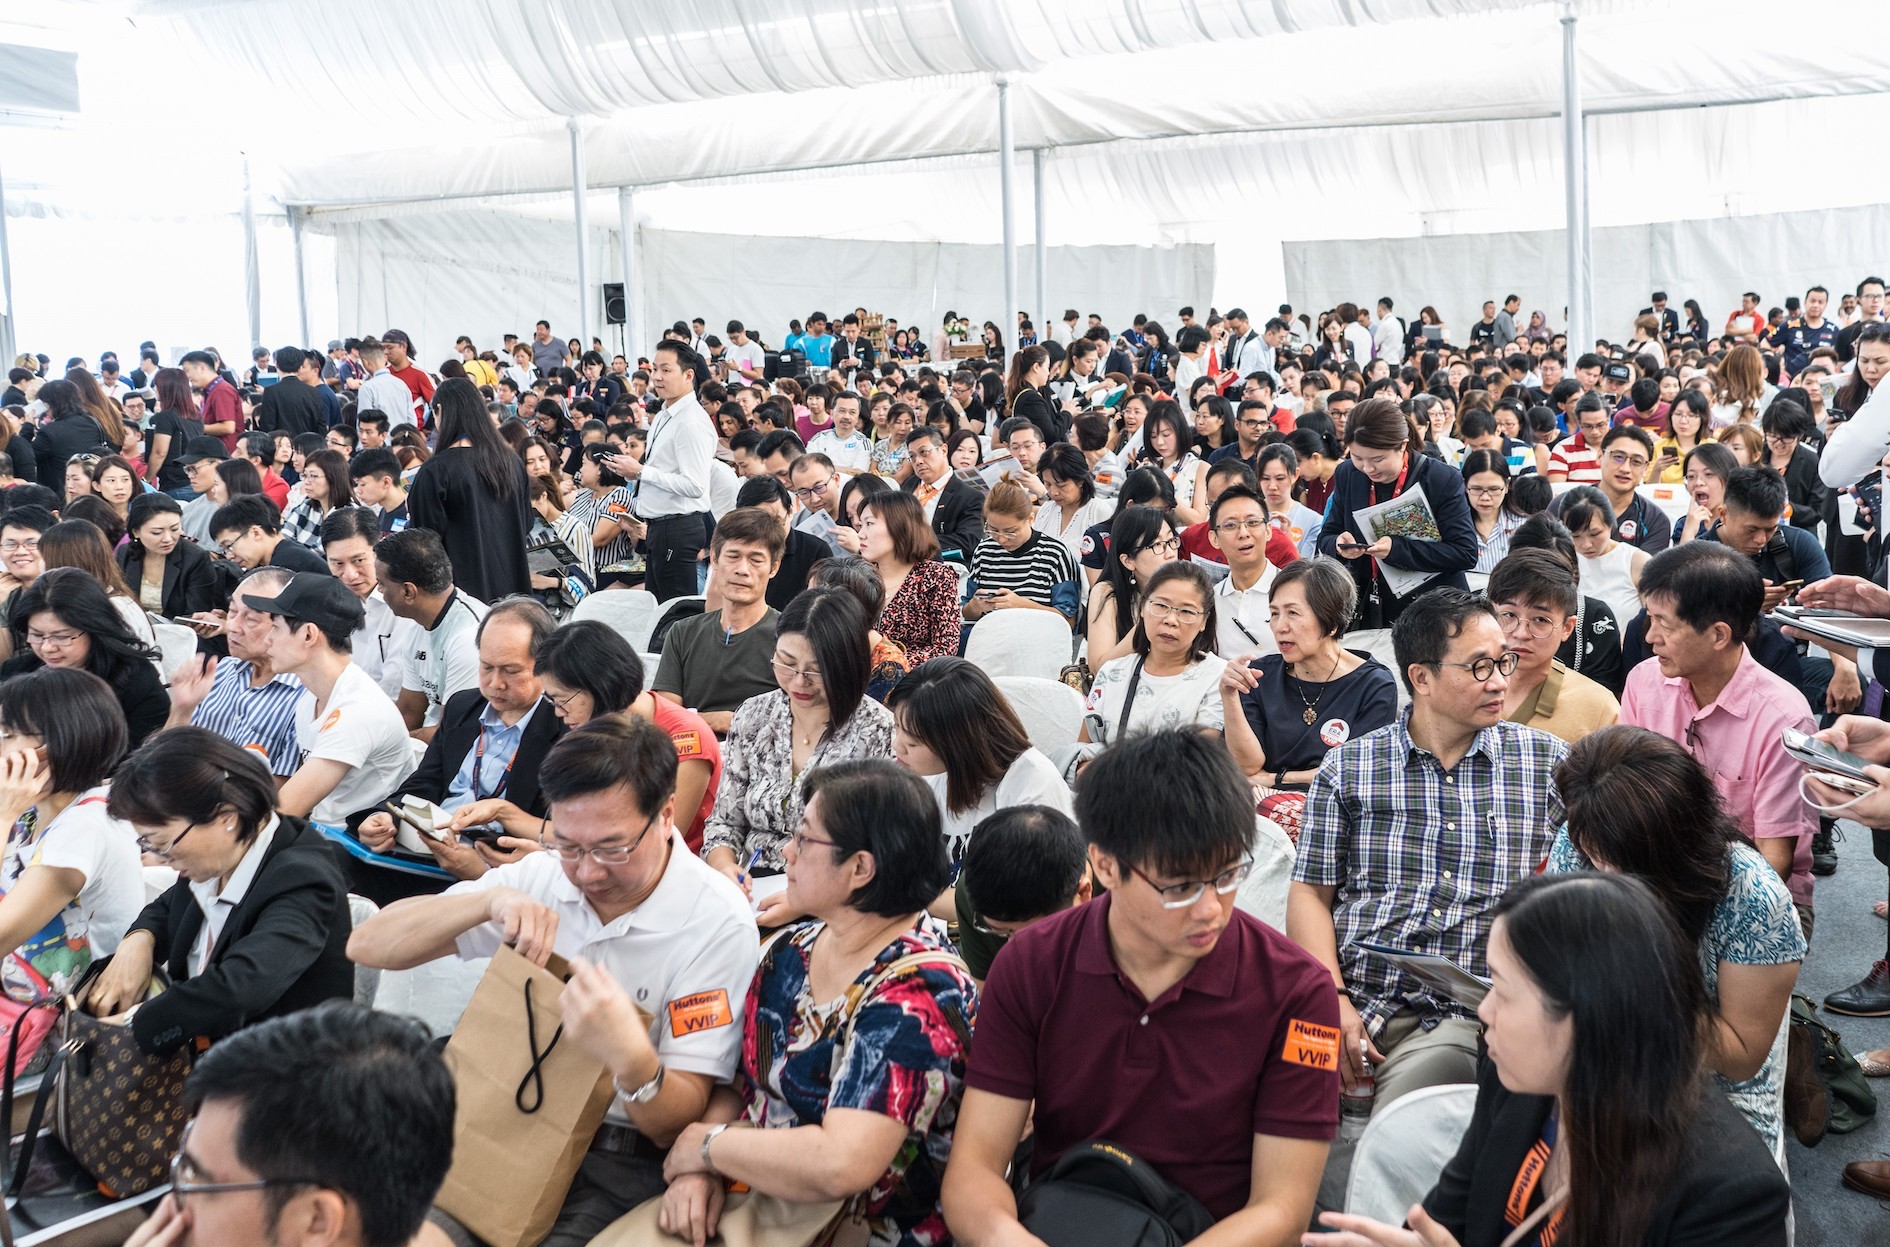 SINGHAIYI - The crowd in the balloting tent at Parc Clematis (Credit: SingHaiyi Group)  - EDGEPROP SINGAPORE